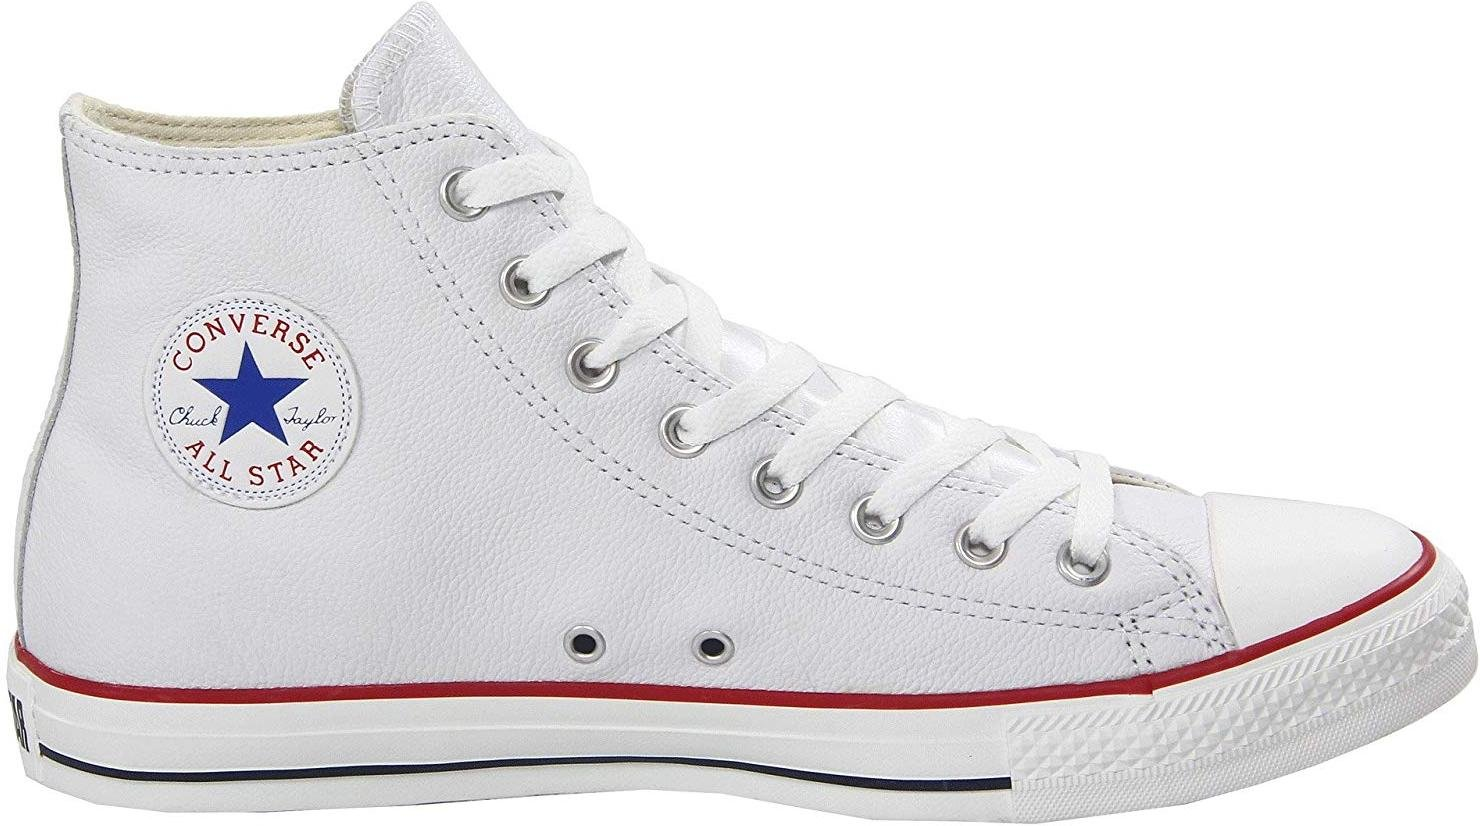 Shoes Converse converse chuck taylor as high leather